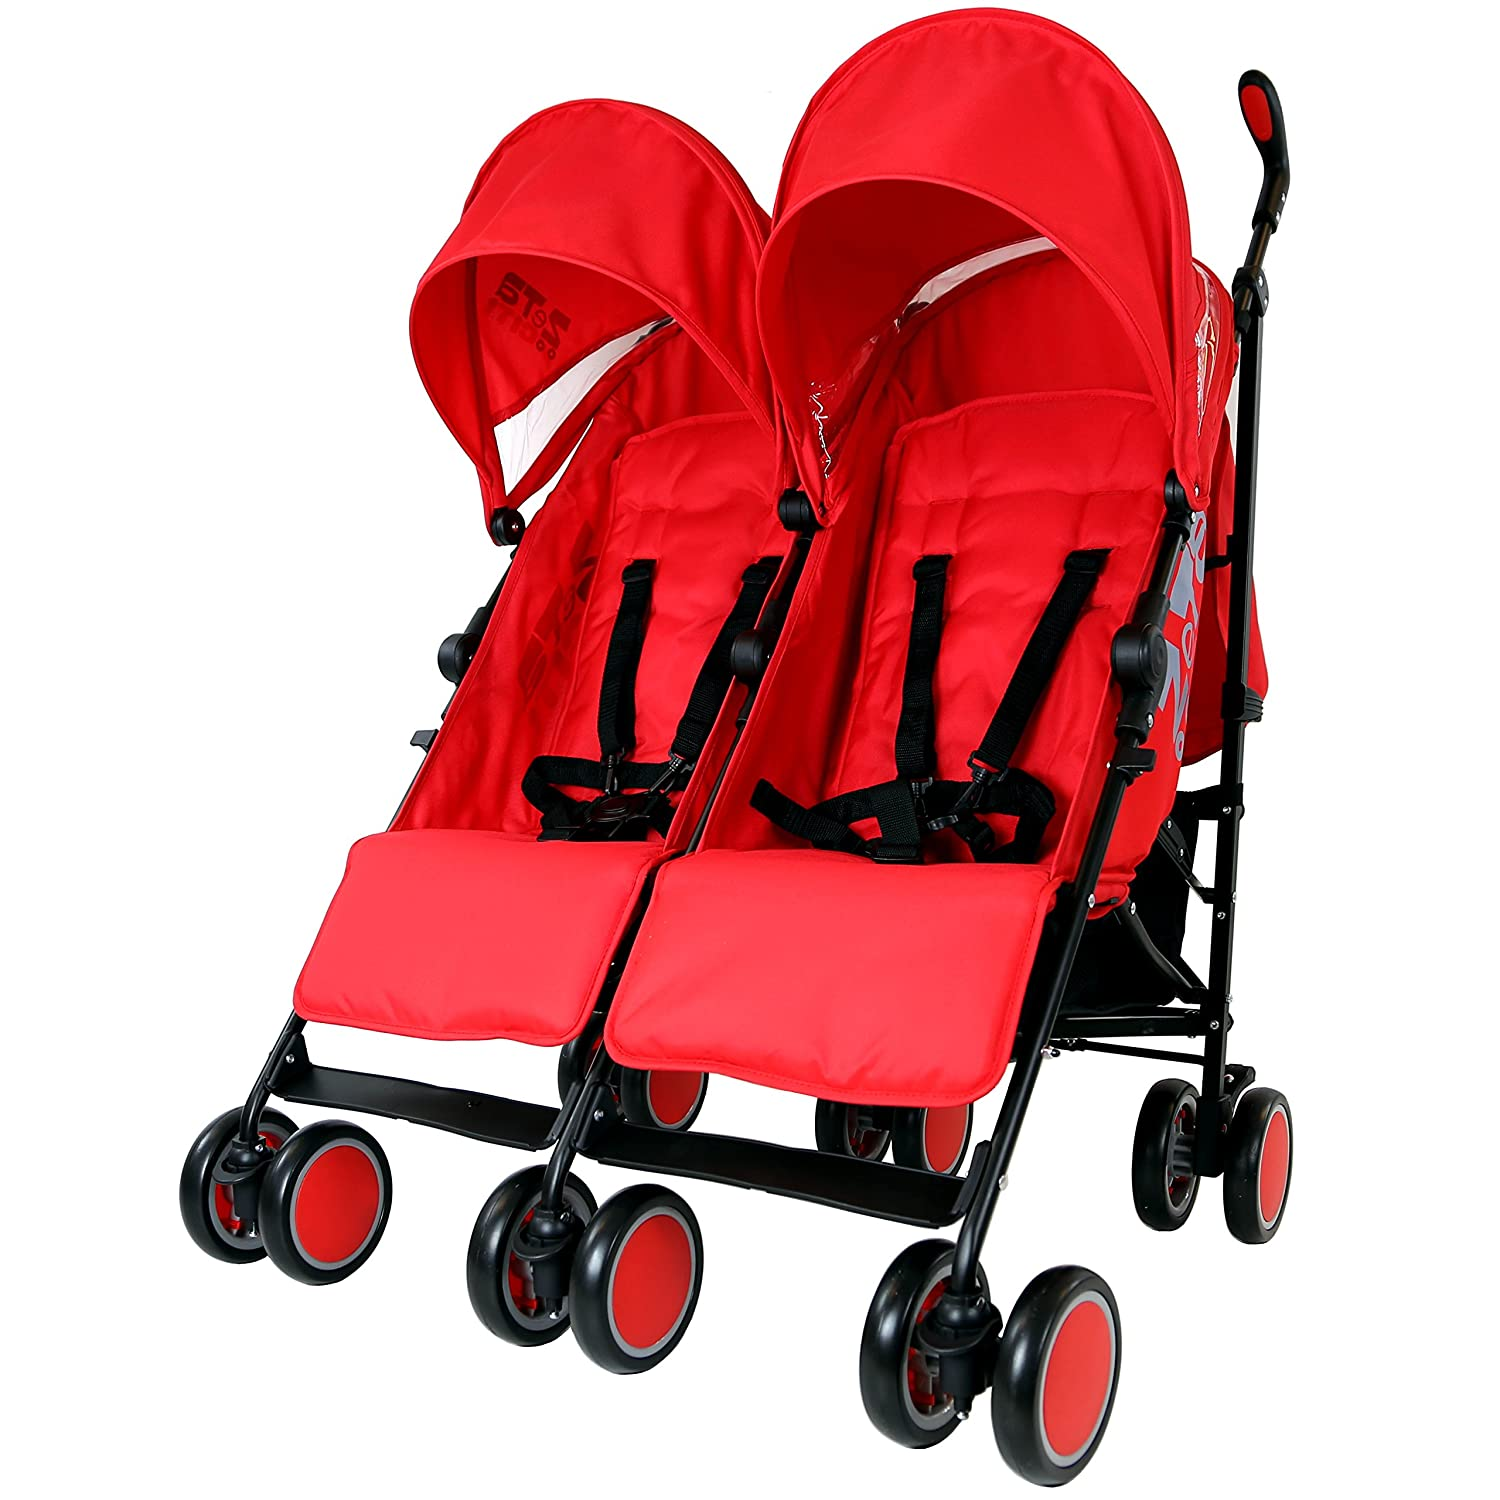 Zeta Citi TWIN Stroller Buggy Pushchair - Warm Red Double Stroller Baby TravelTM